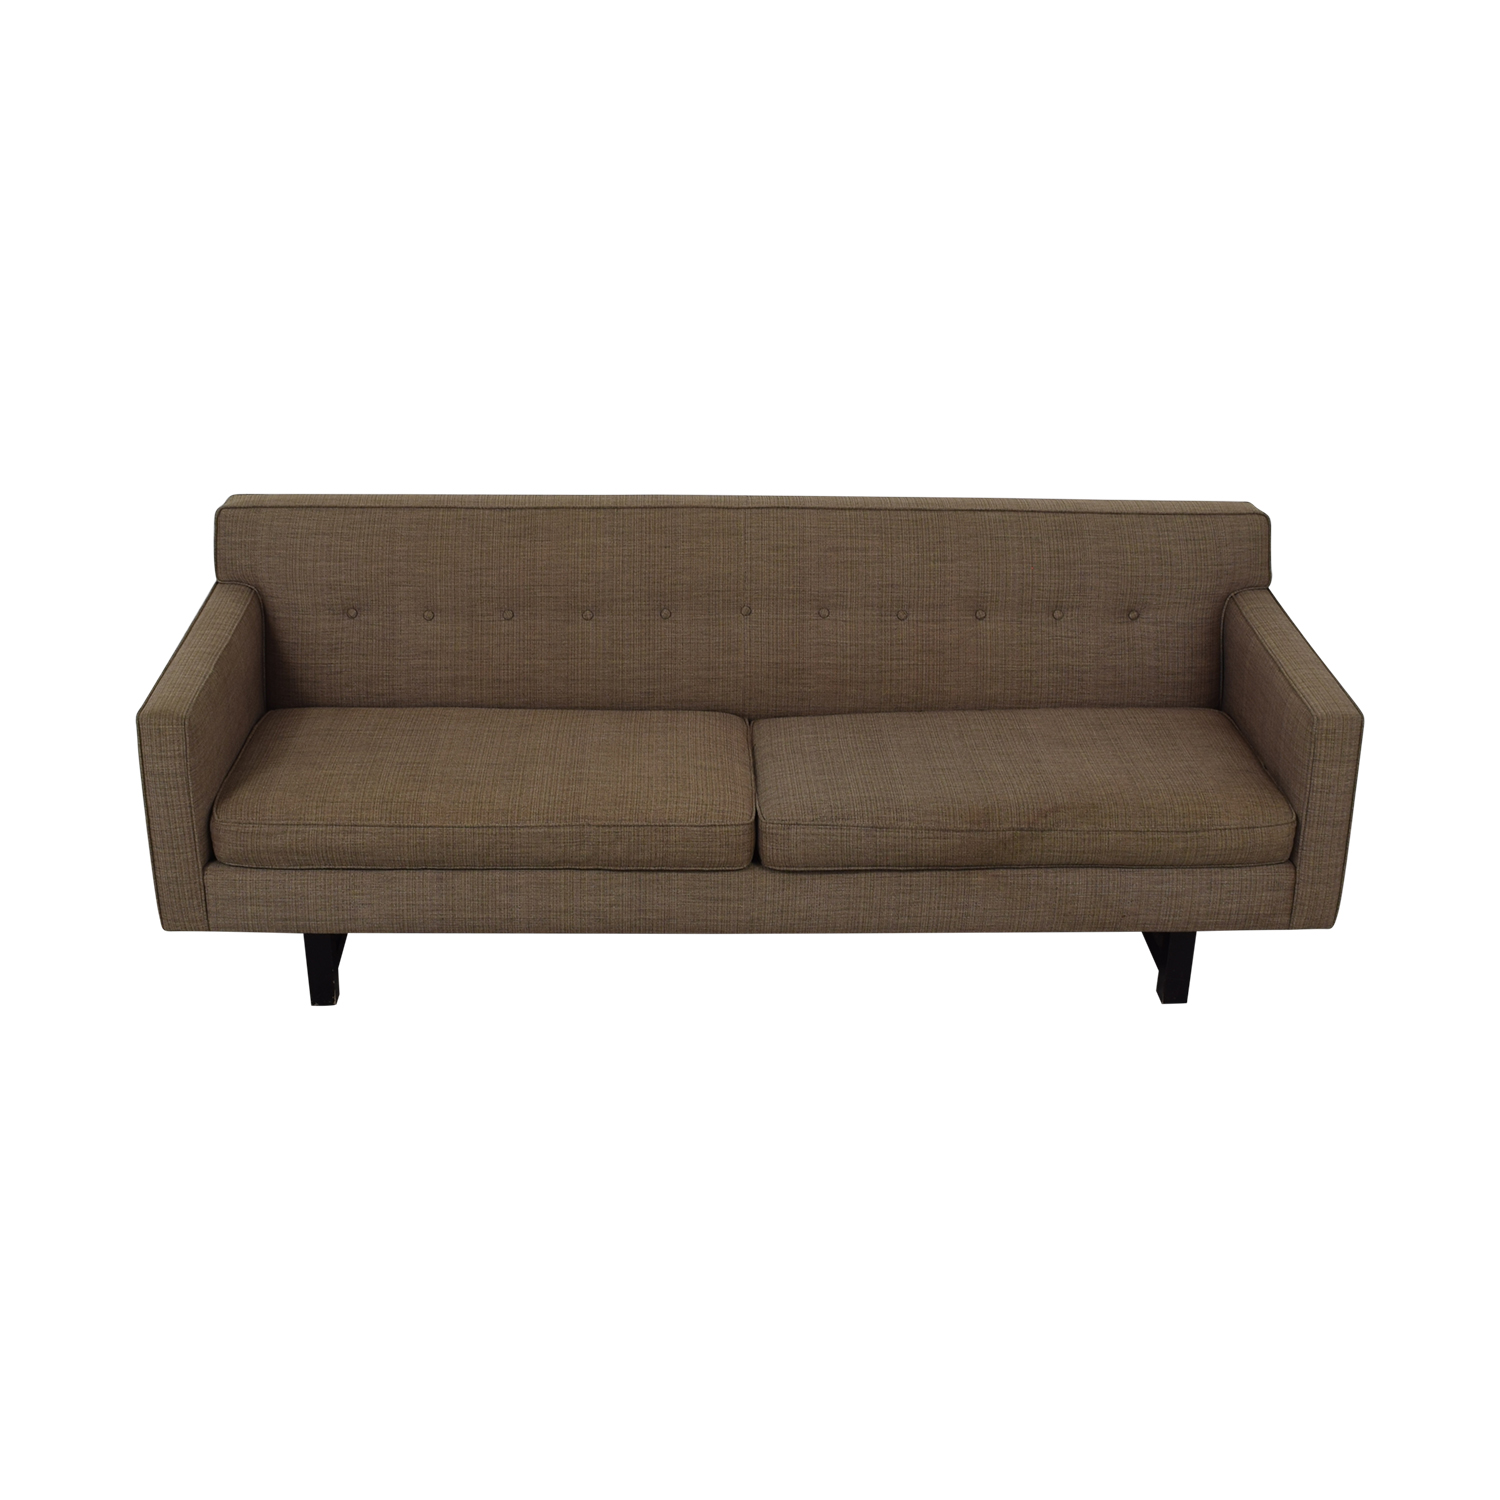 buy Room & Board Andre Tan Tufted Two-Cushion Sofa Room and Board